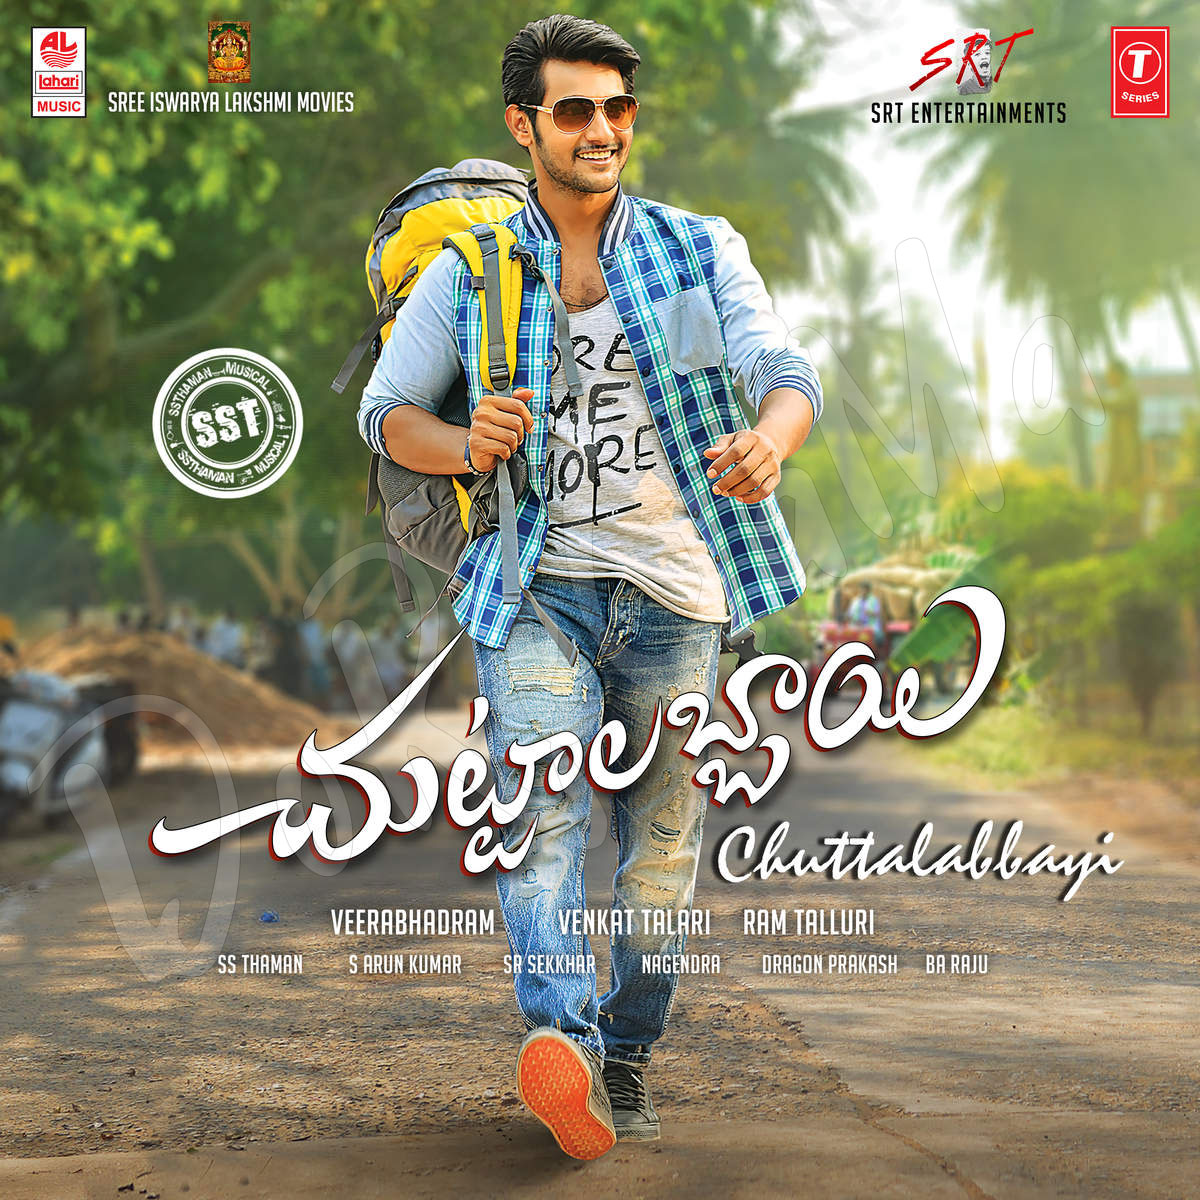 Chuttalabbayi 2016 Telugu Movie Original CD fRont cover Poster wallpaper